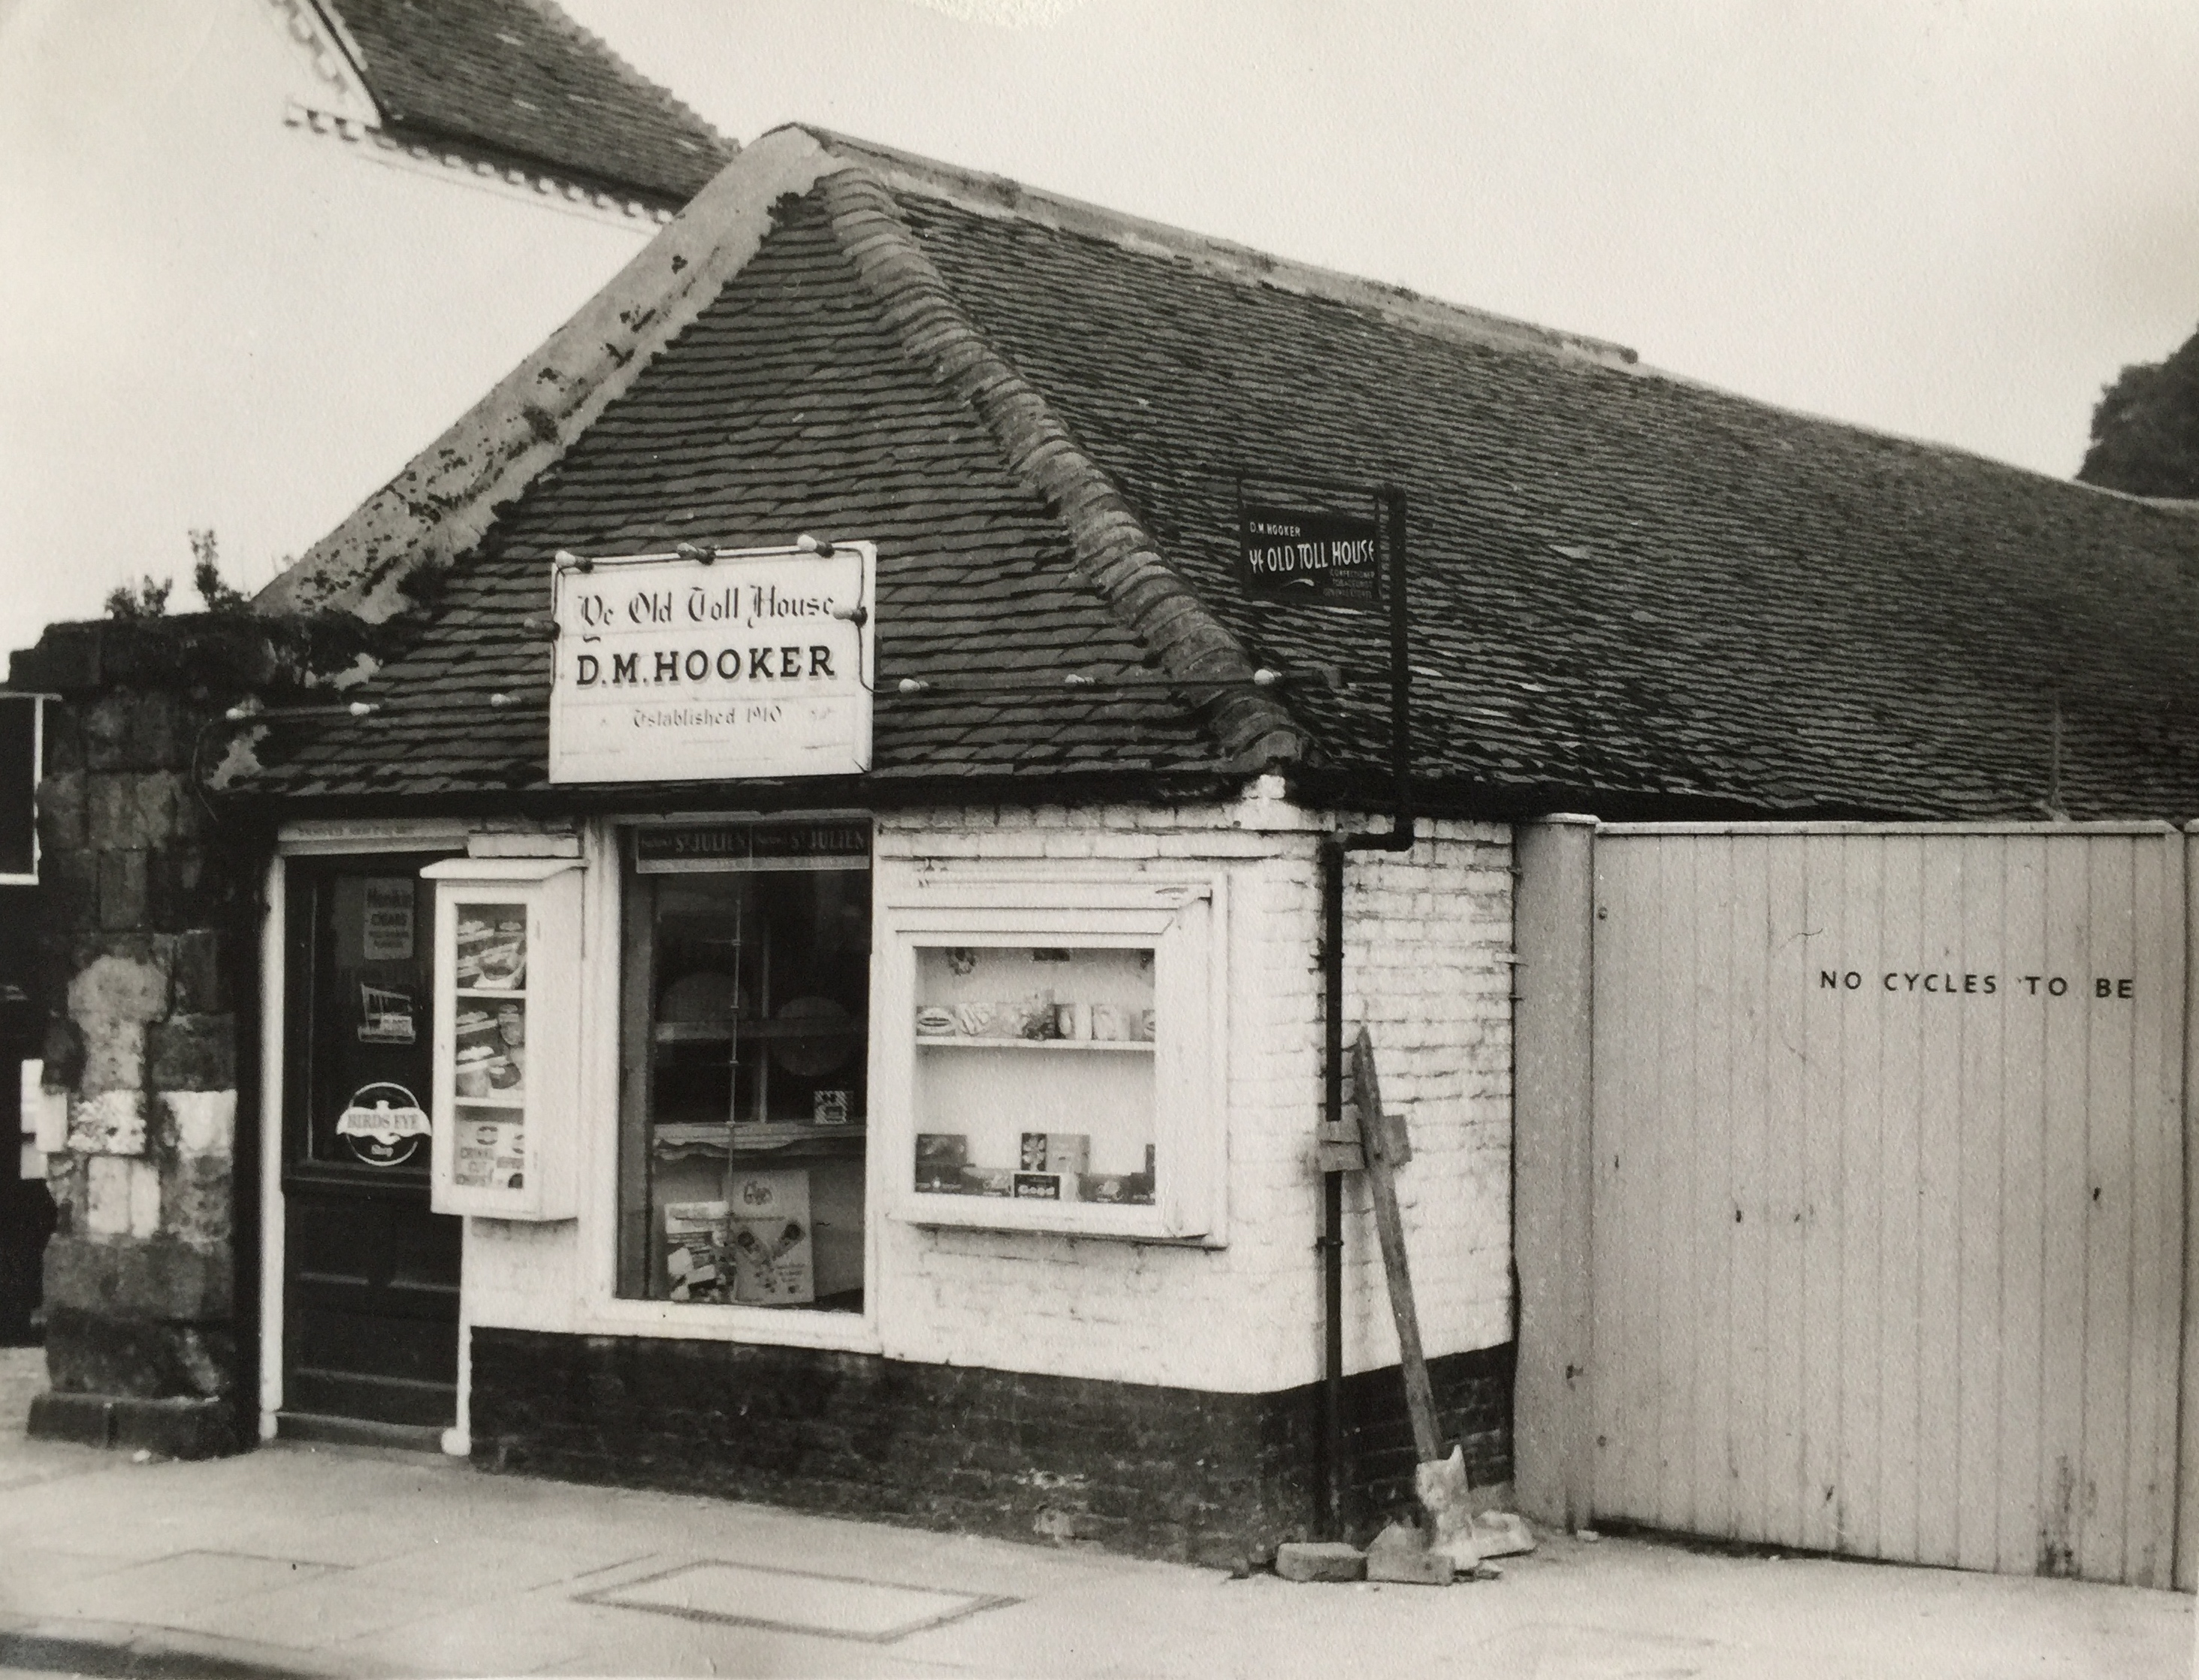 D M Hooker's shop 1963, now the Indian Restaurant - Collection Ken Green, photo Banks